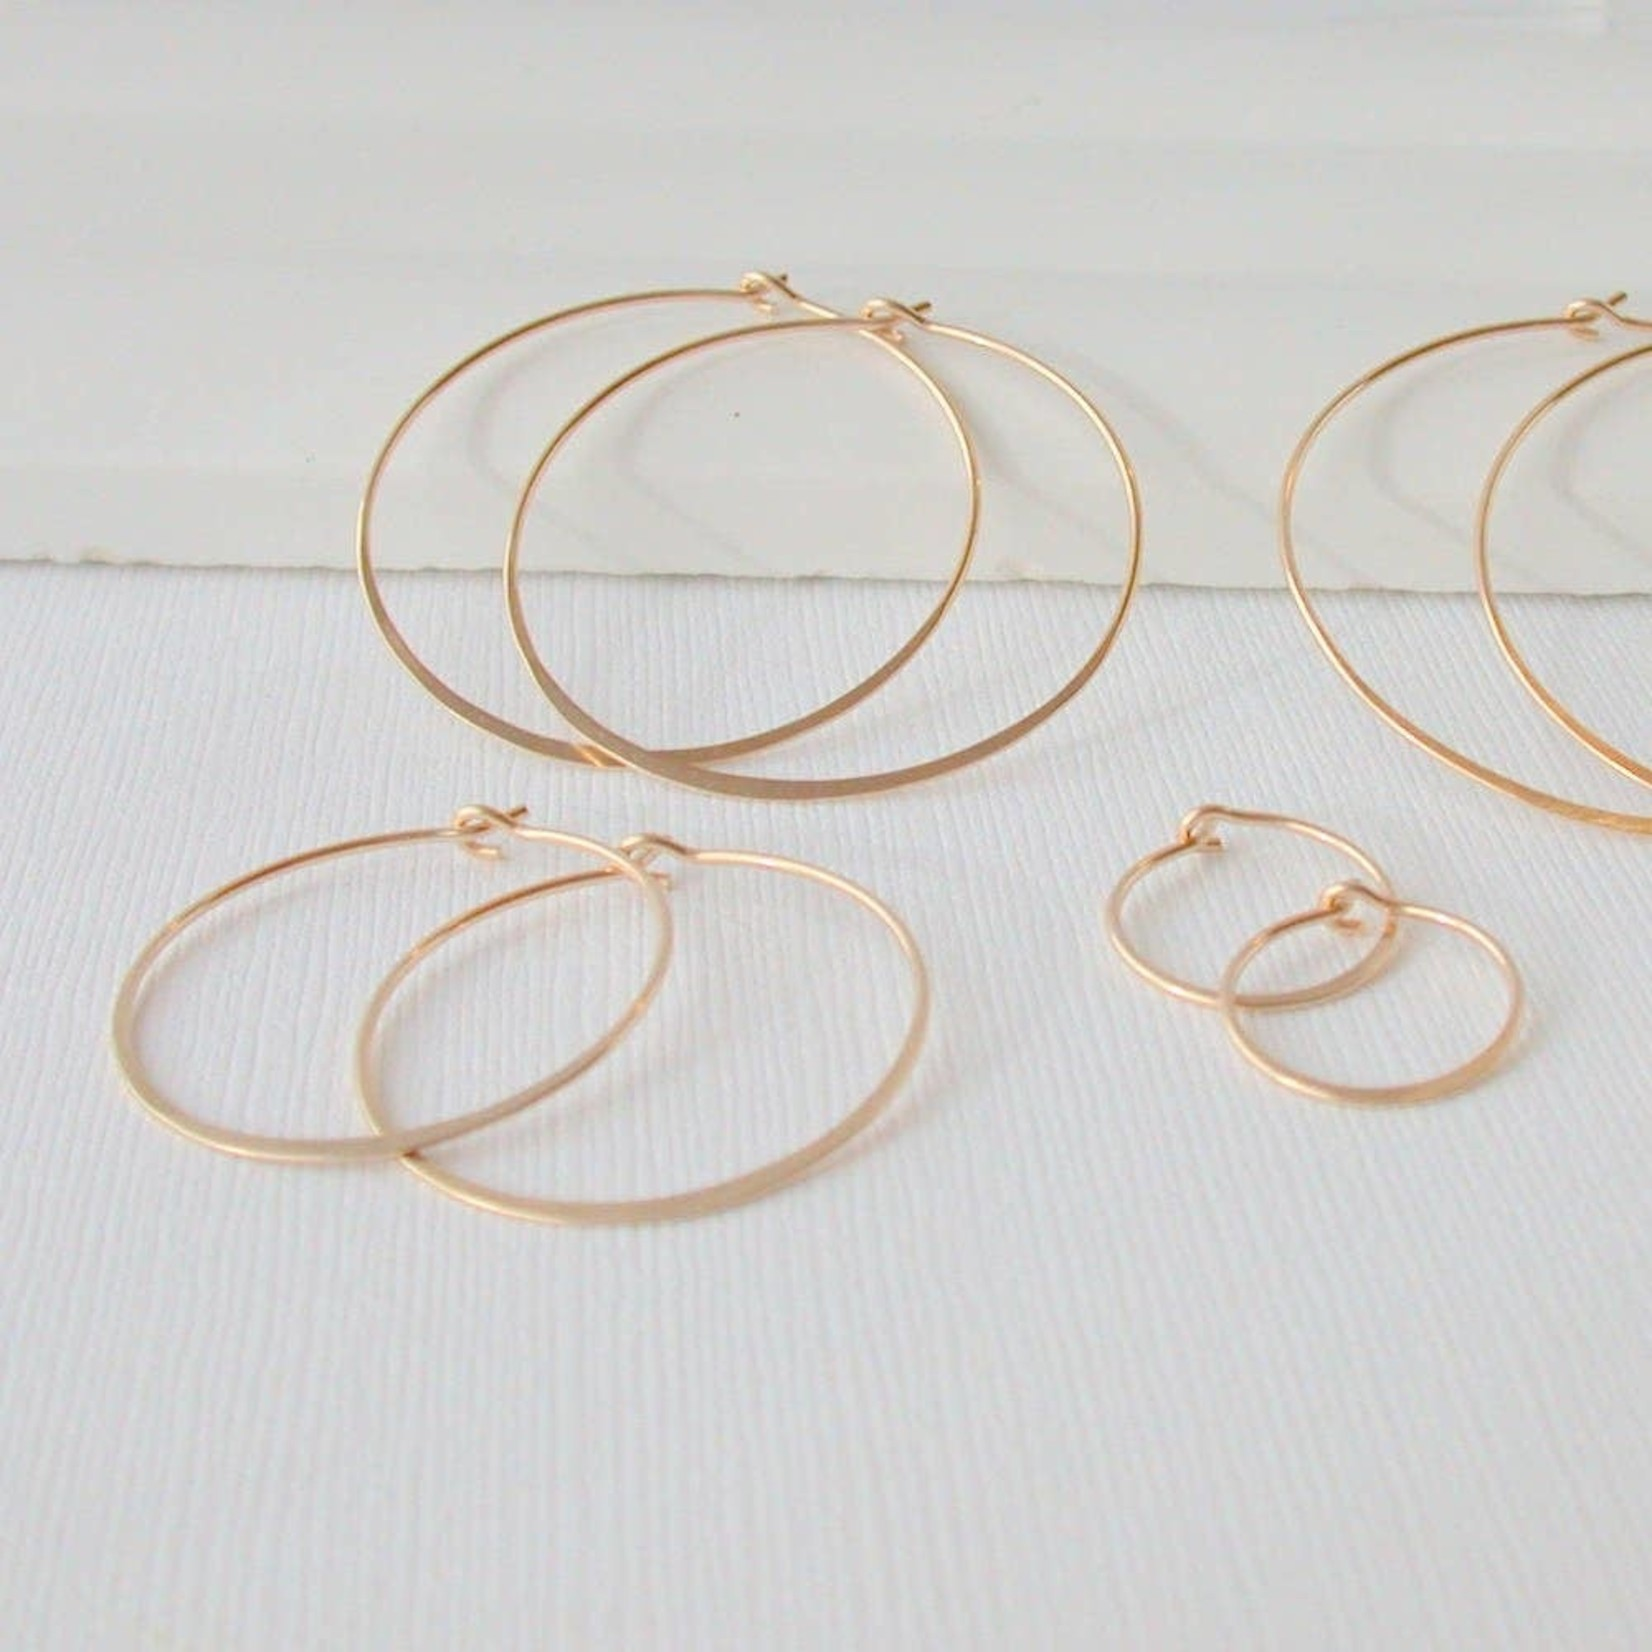 Linda Trent Jewelry Linda Trent ROSE GOLD Fill Hoop Earring